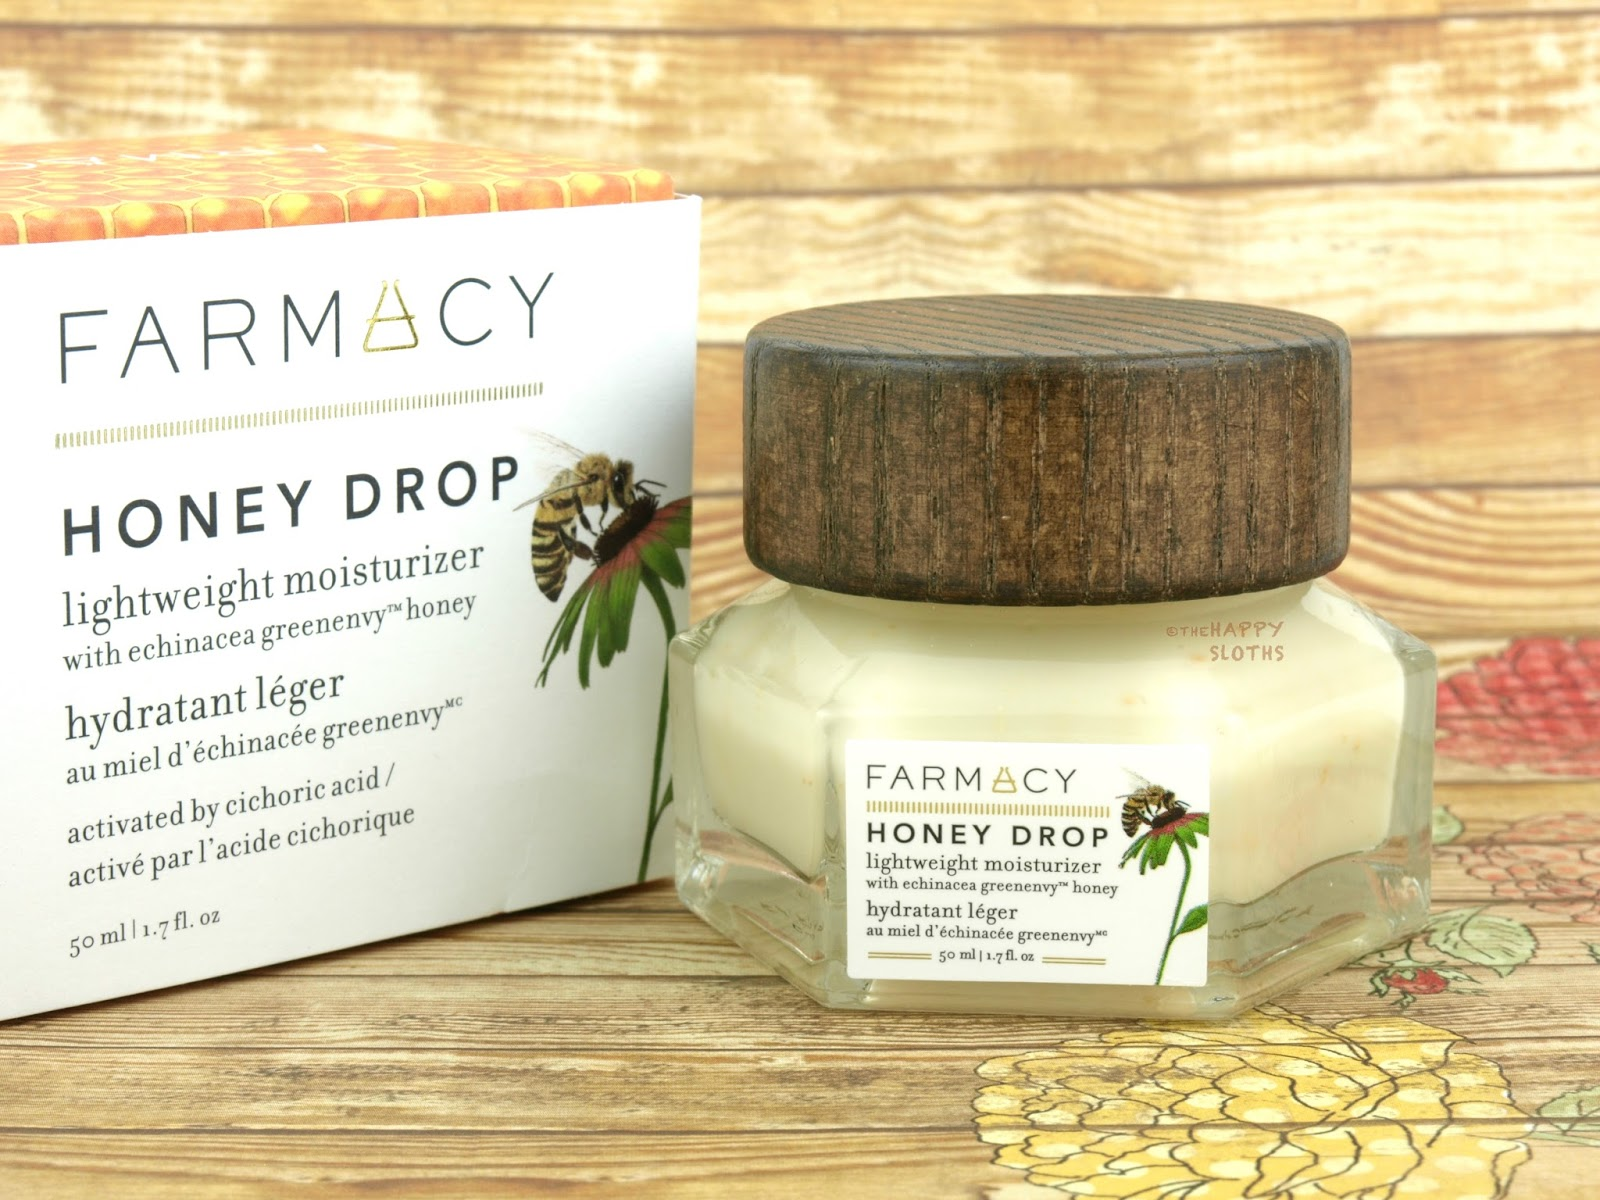 Farmacy Honey Drop Lightweight Moisturizer: Review